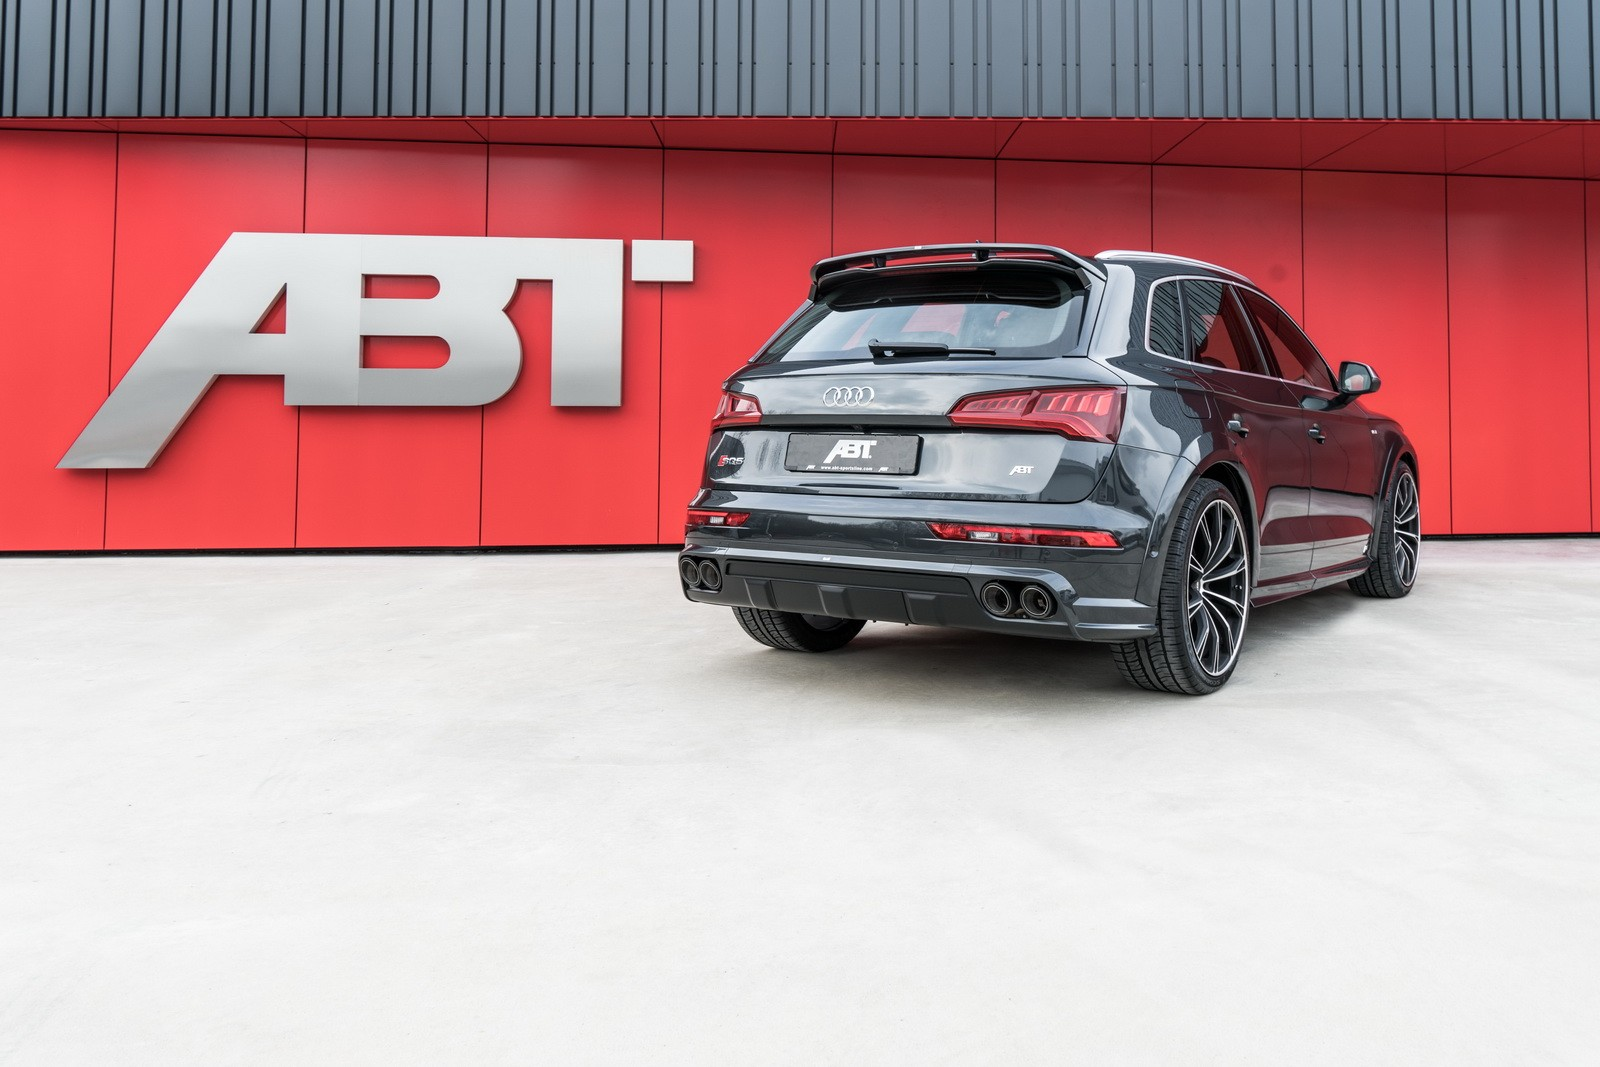 Audi SQ5 Tuning by ABT Includes Widebody Kit and 425 HP